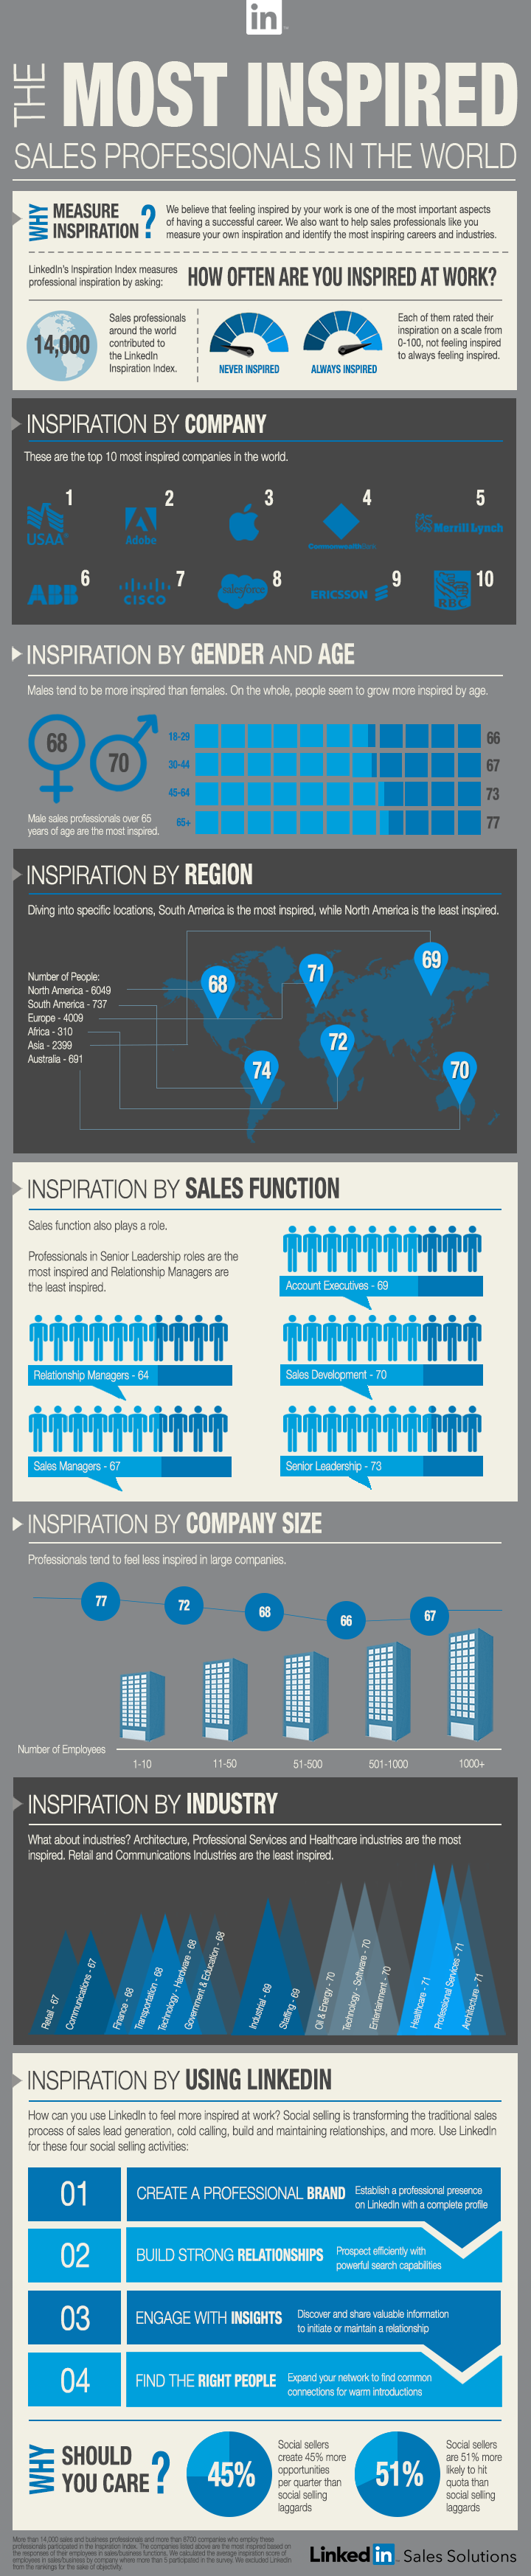 linkedin-inspiration-infographic